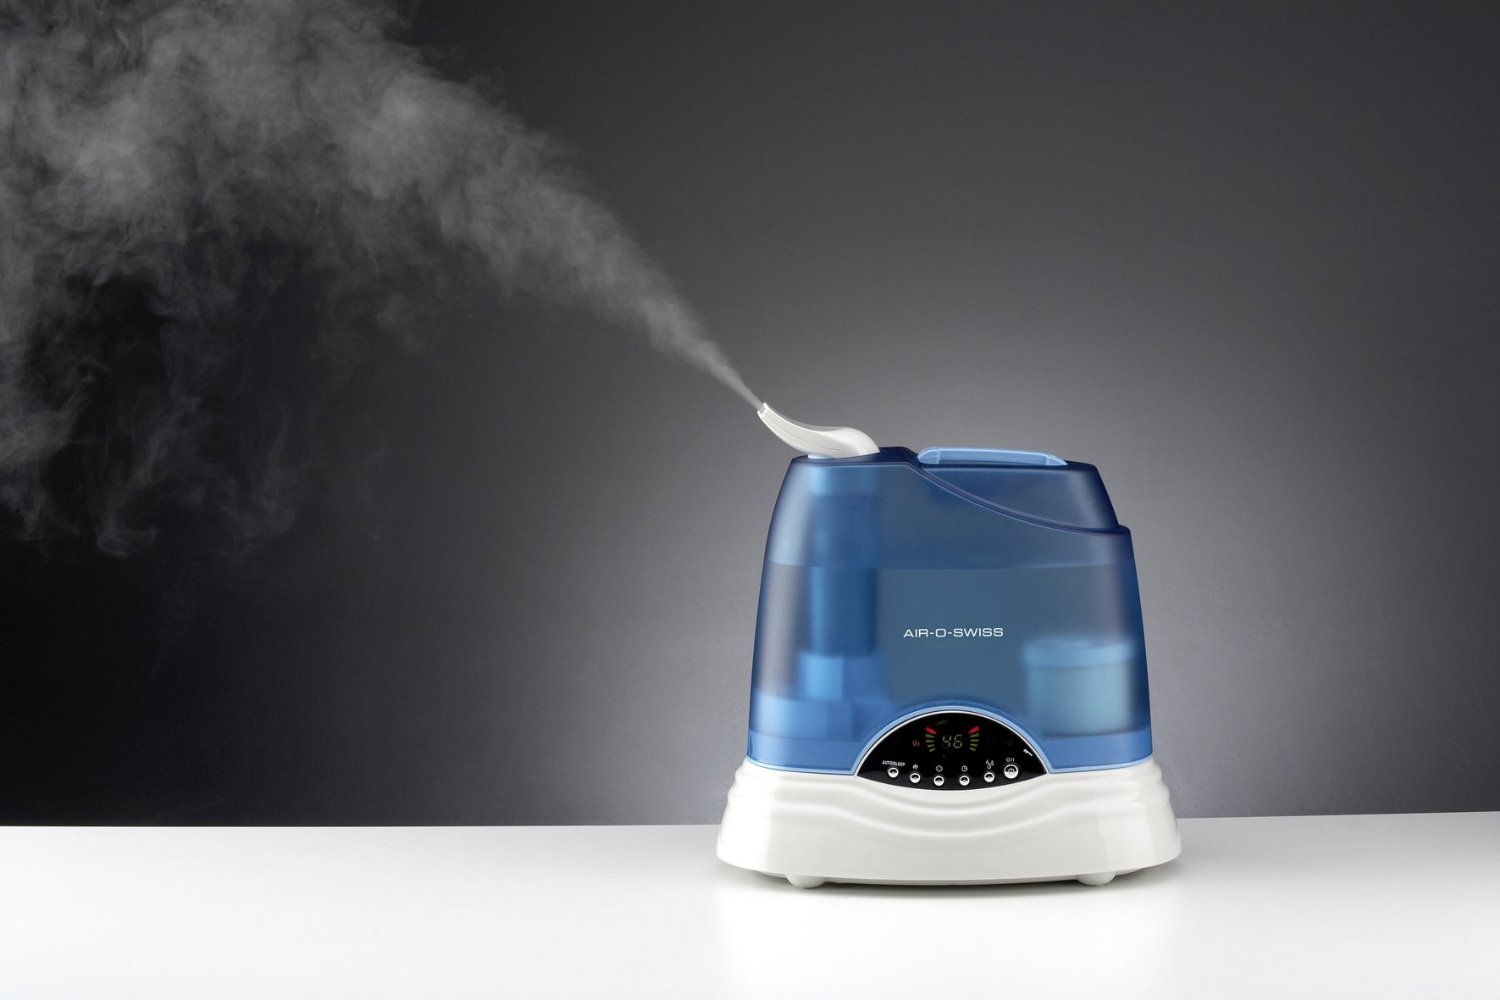 """<font size=""""5"""">Learn More About Air Humidifiers</font>"""